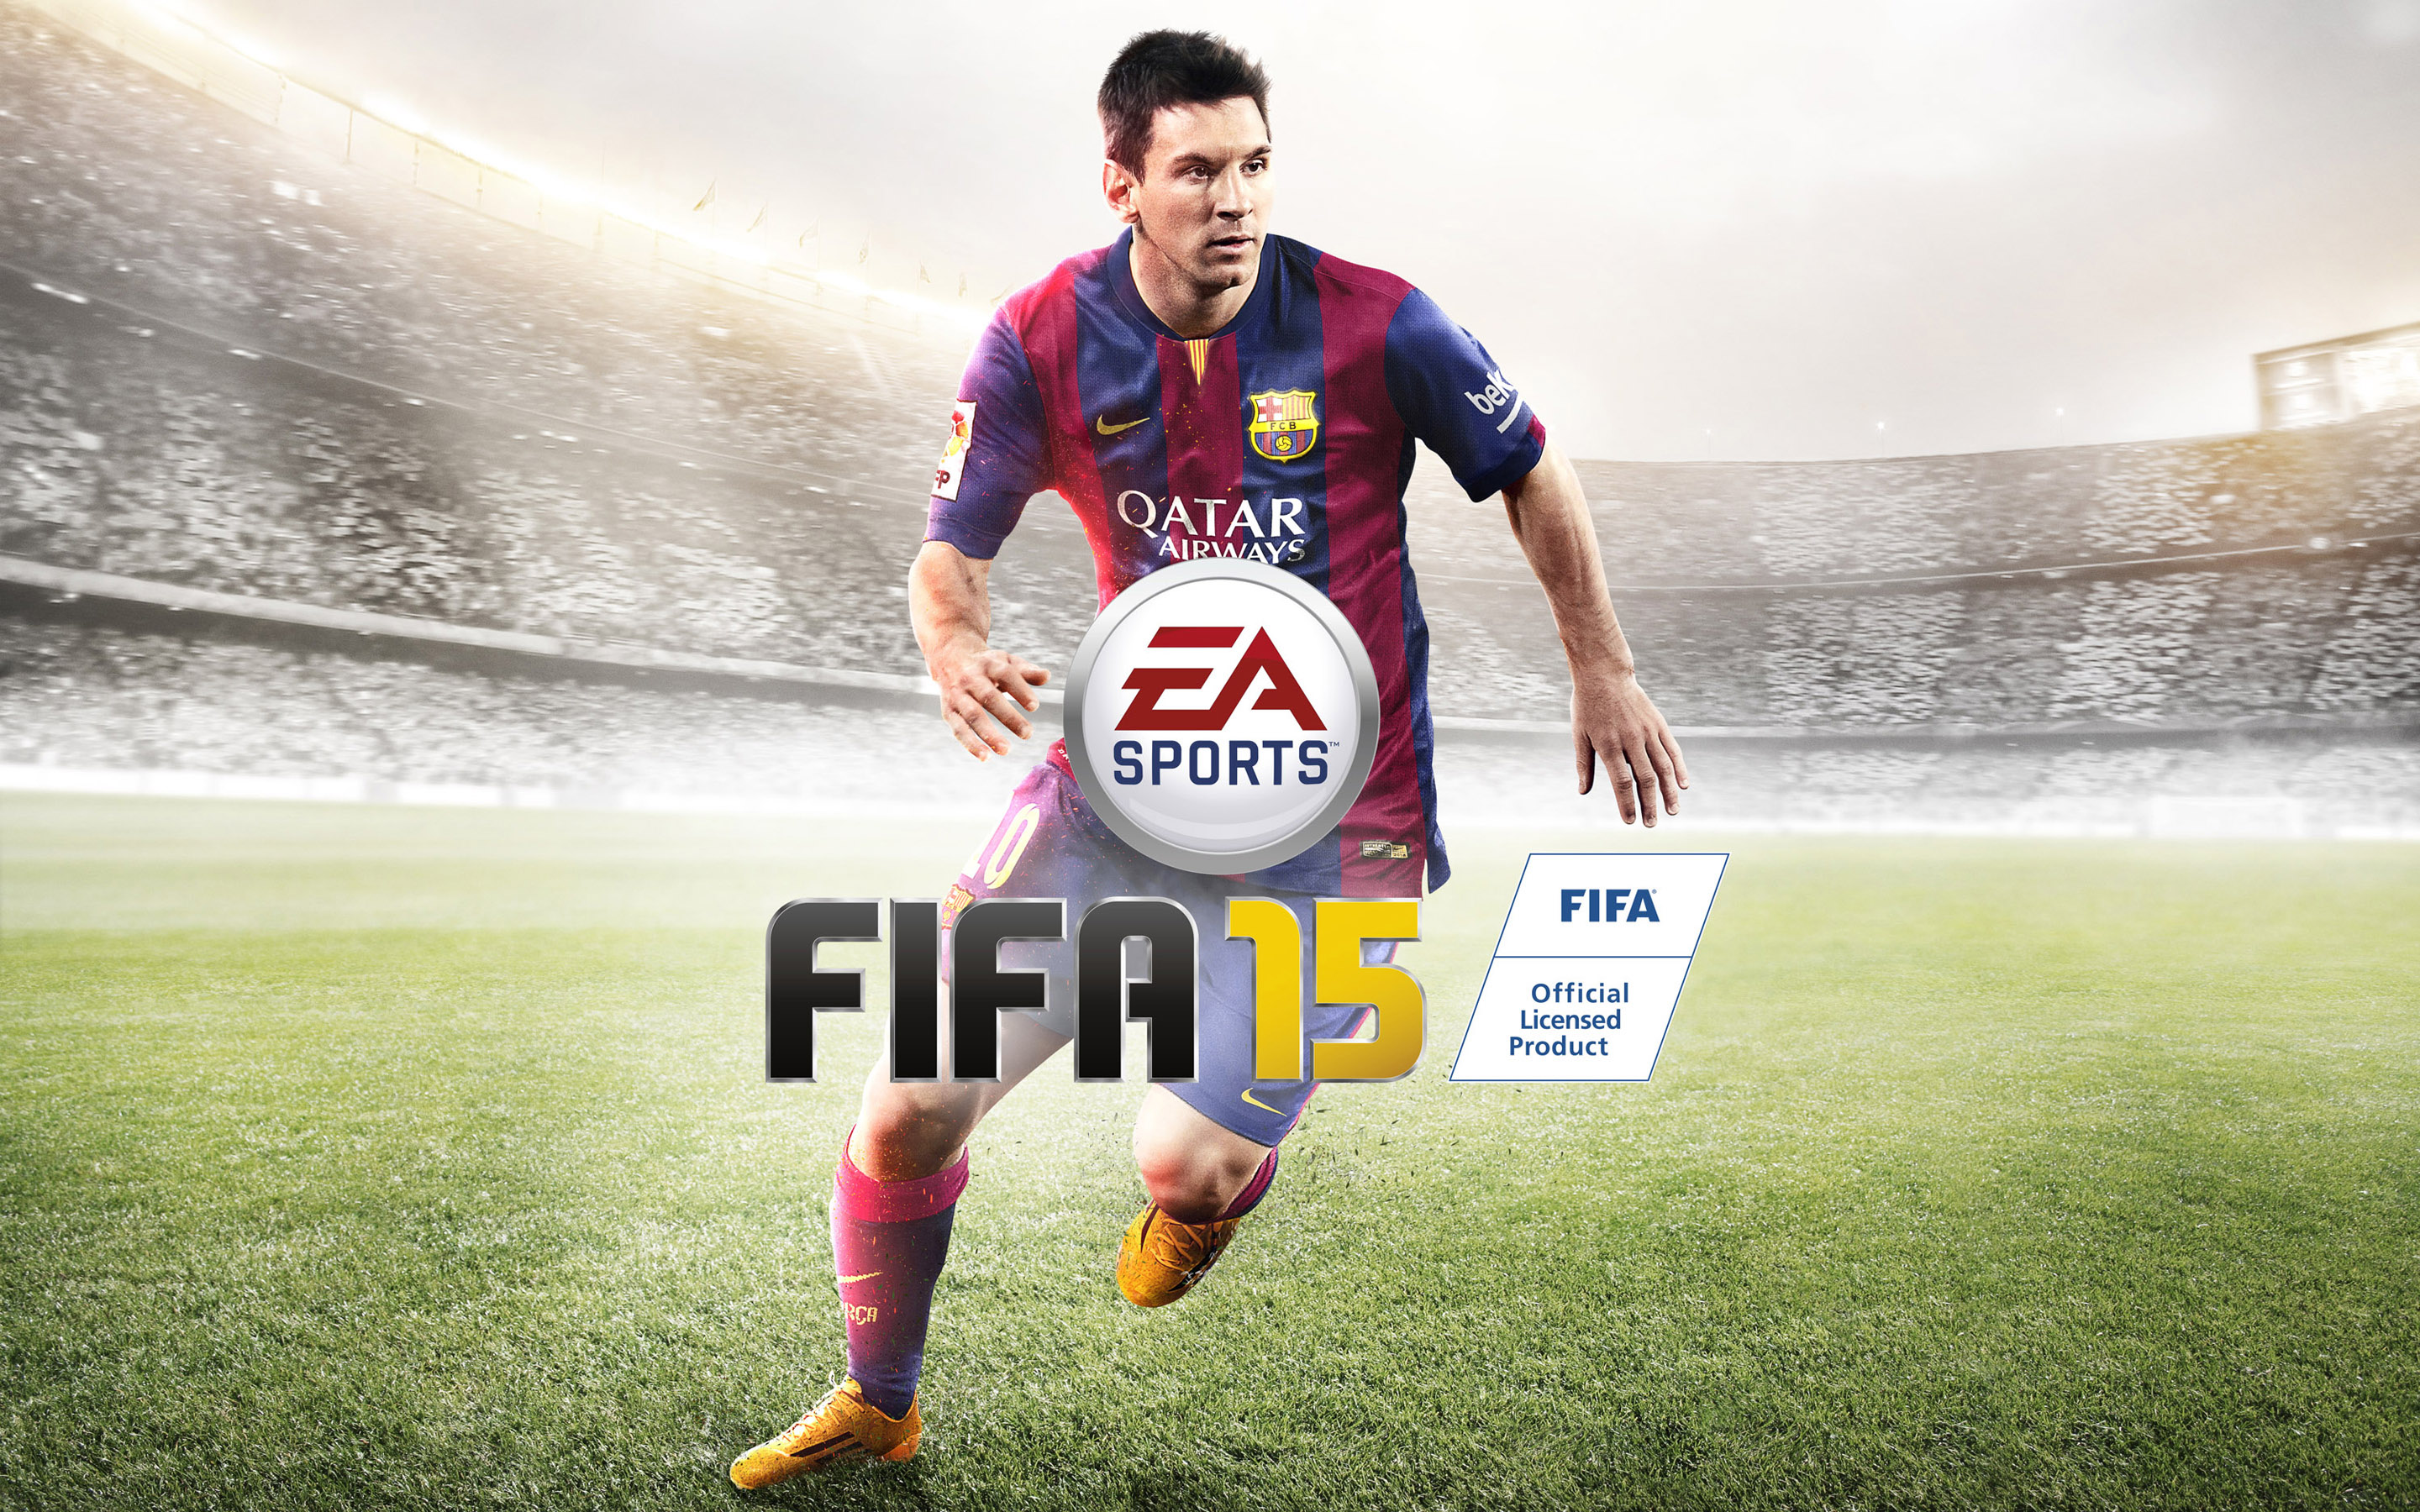 FIFA 17 Cover Vote Is Complete - EA SPORTS Official Site